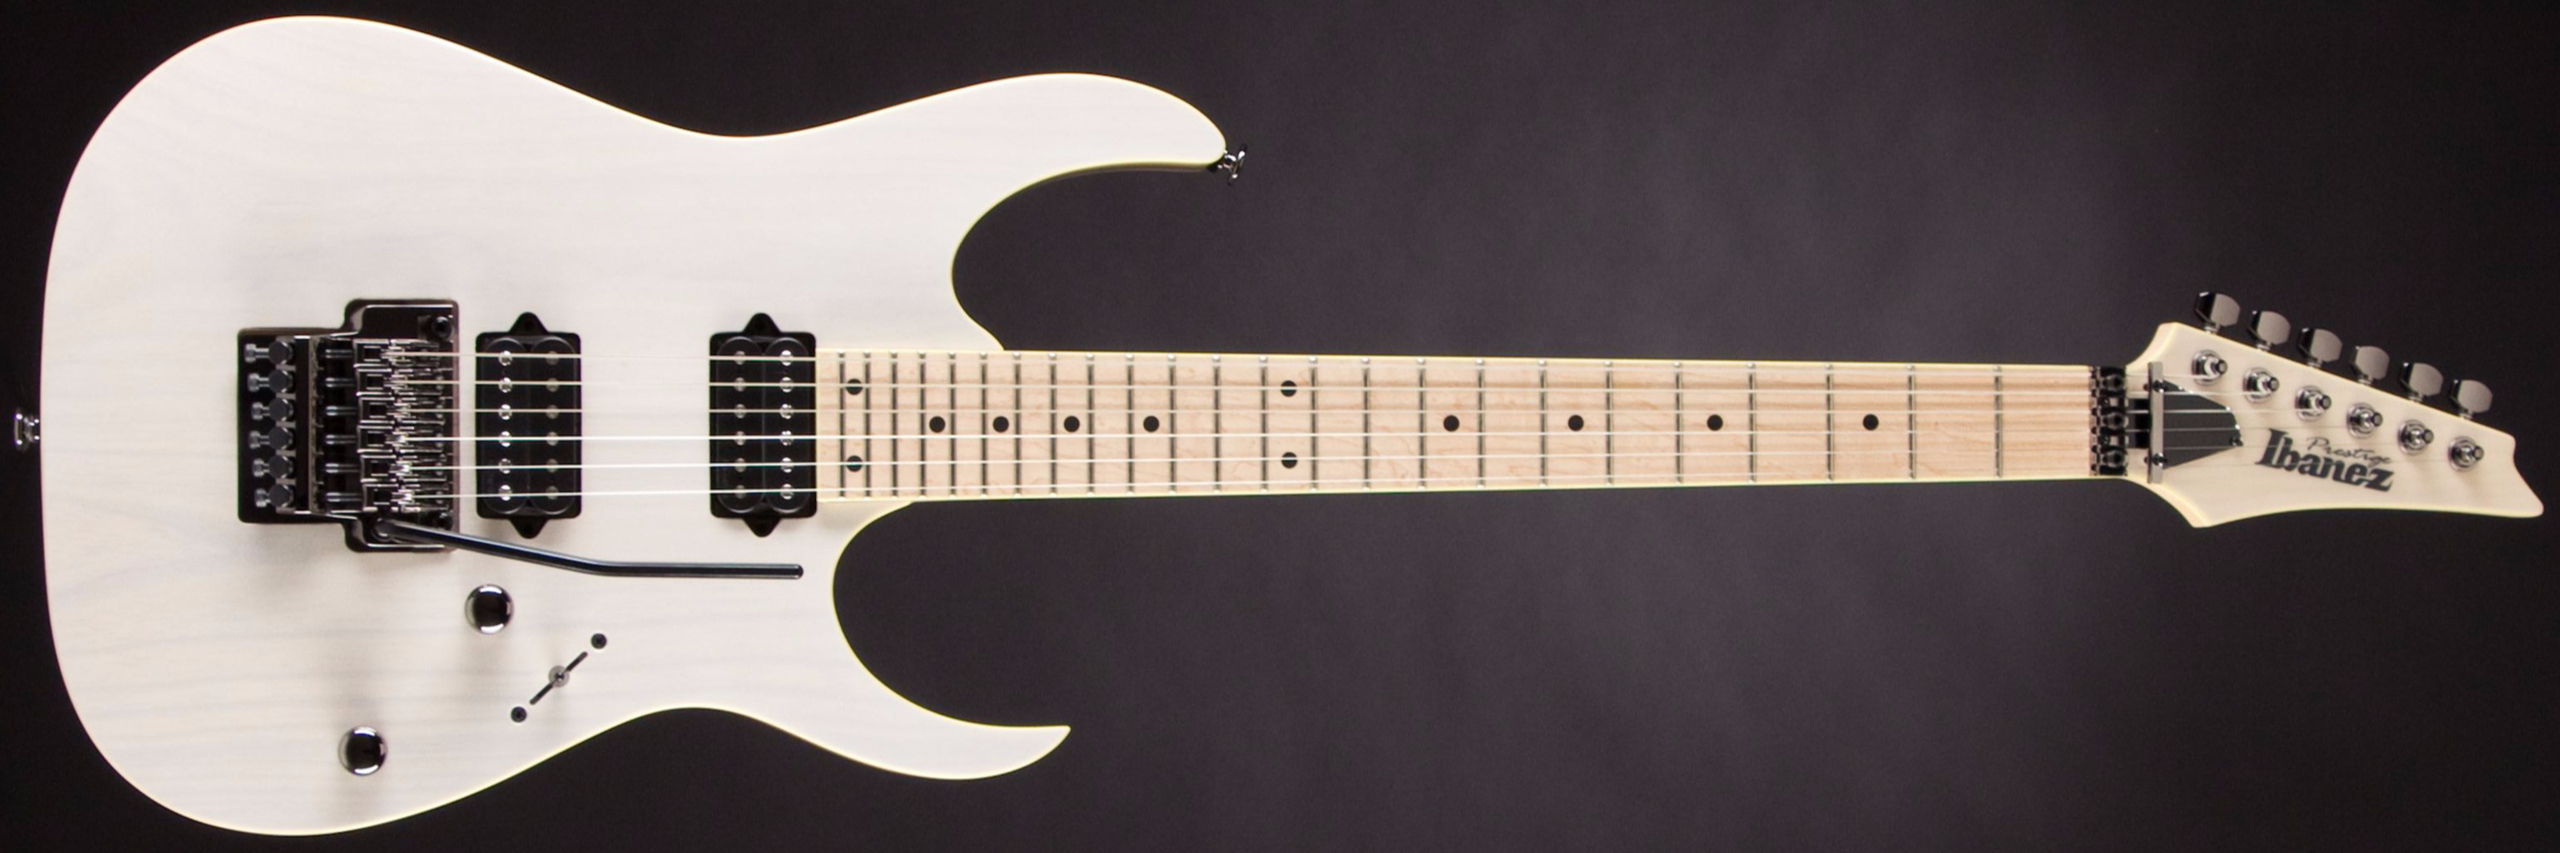 IBANEZ Prestige RG652AHM-AWD Antique White Blonde